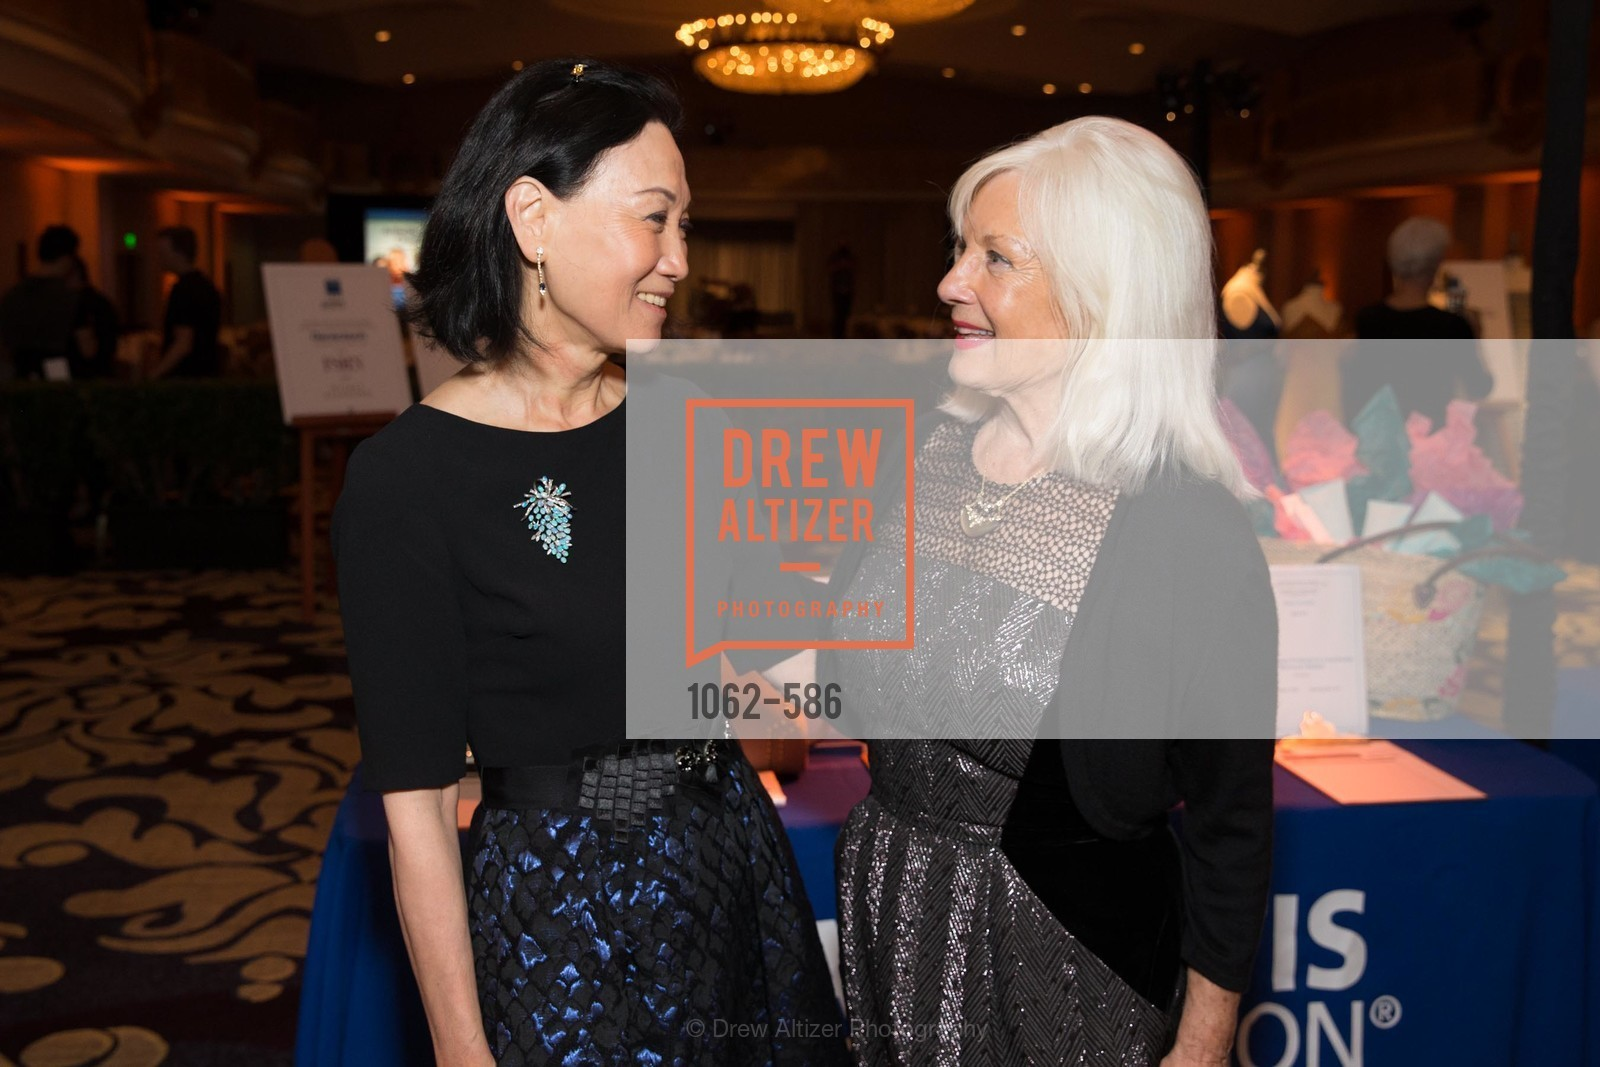 Iris Chan, Arlene Inch, 2014 Bay Area ARTHRITIS AUXILLIARY Benefit & Fashion Show, US, October 1st, 2014,Drew Altizer, Drew Altizer Photography, full-service agency, private events, San Francisco photographer, photographer california